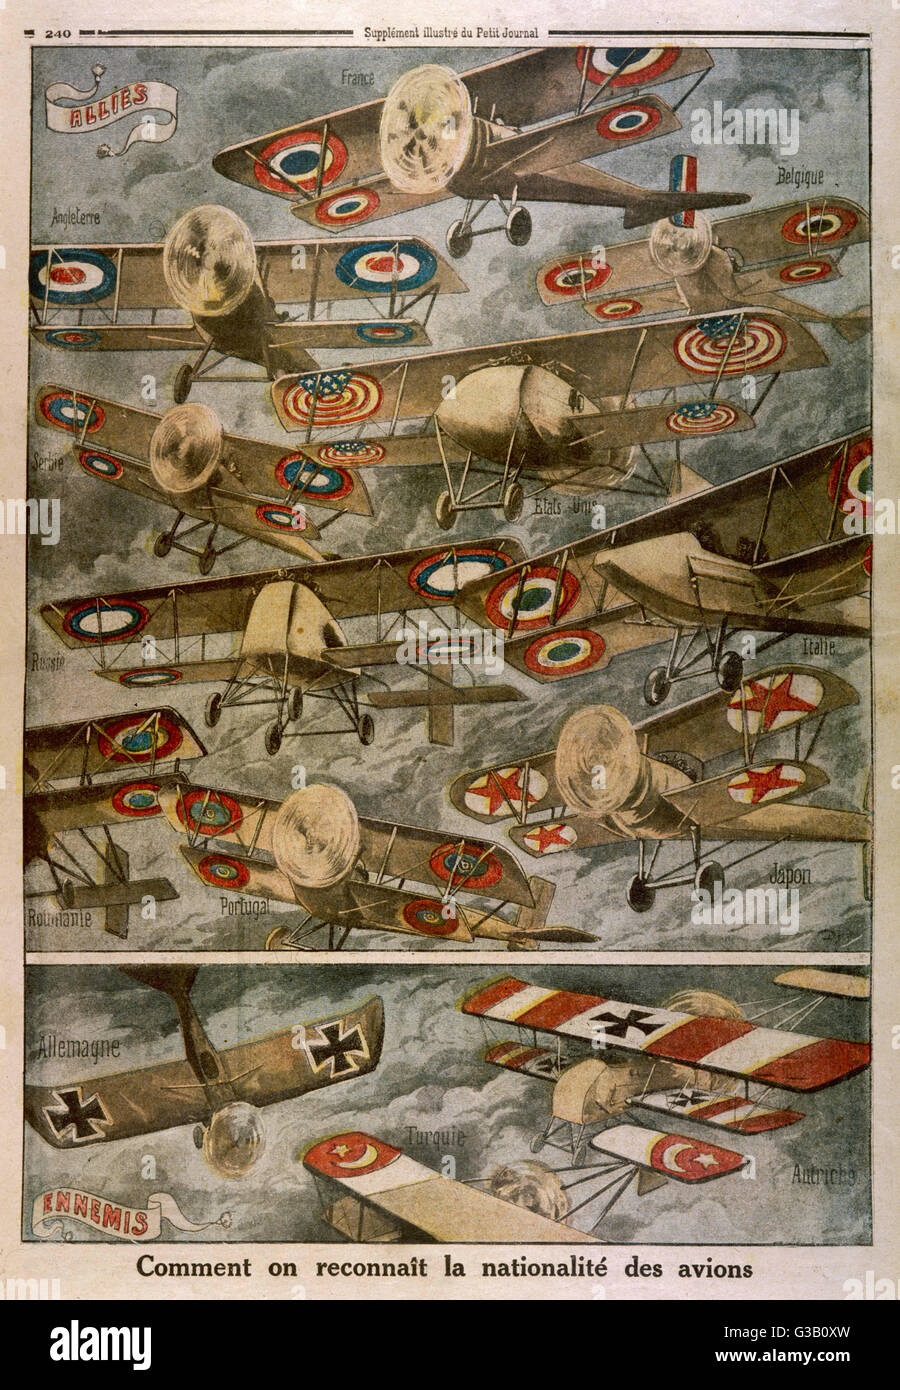 How to recognise the aircraft of different countries by  their markings        Date: 1917 - Stock Image